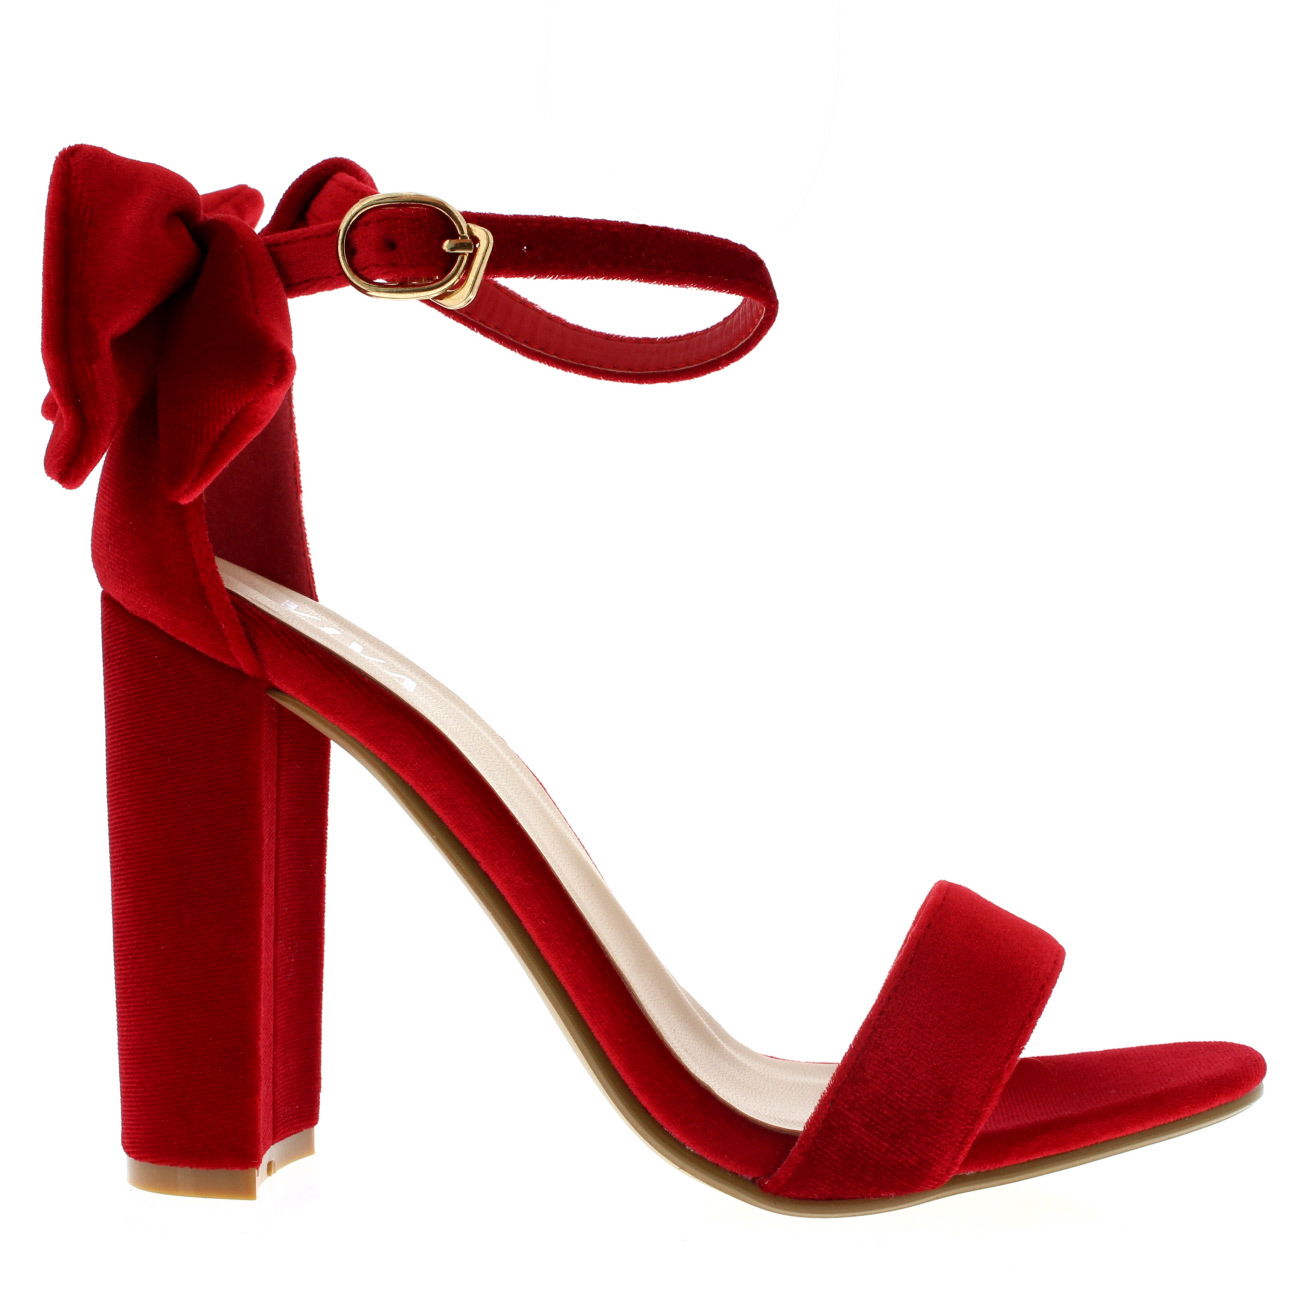 bc73c16584f Womens Barely There Cut Out Open Toe Bow Ankle Strap Block Heel ...